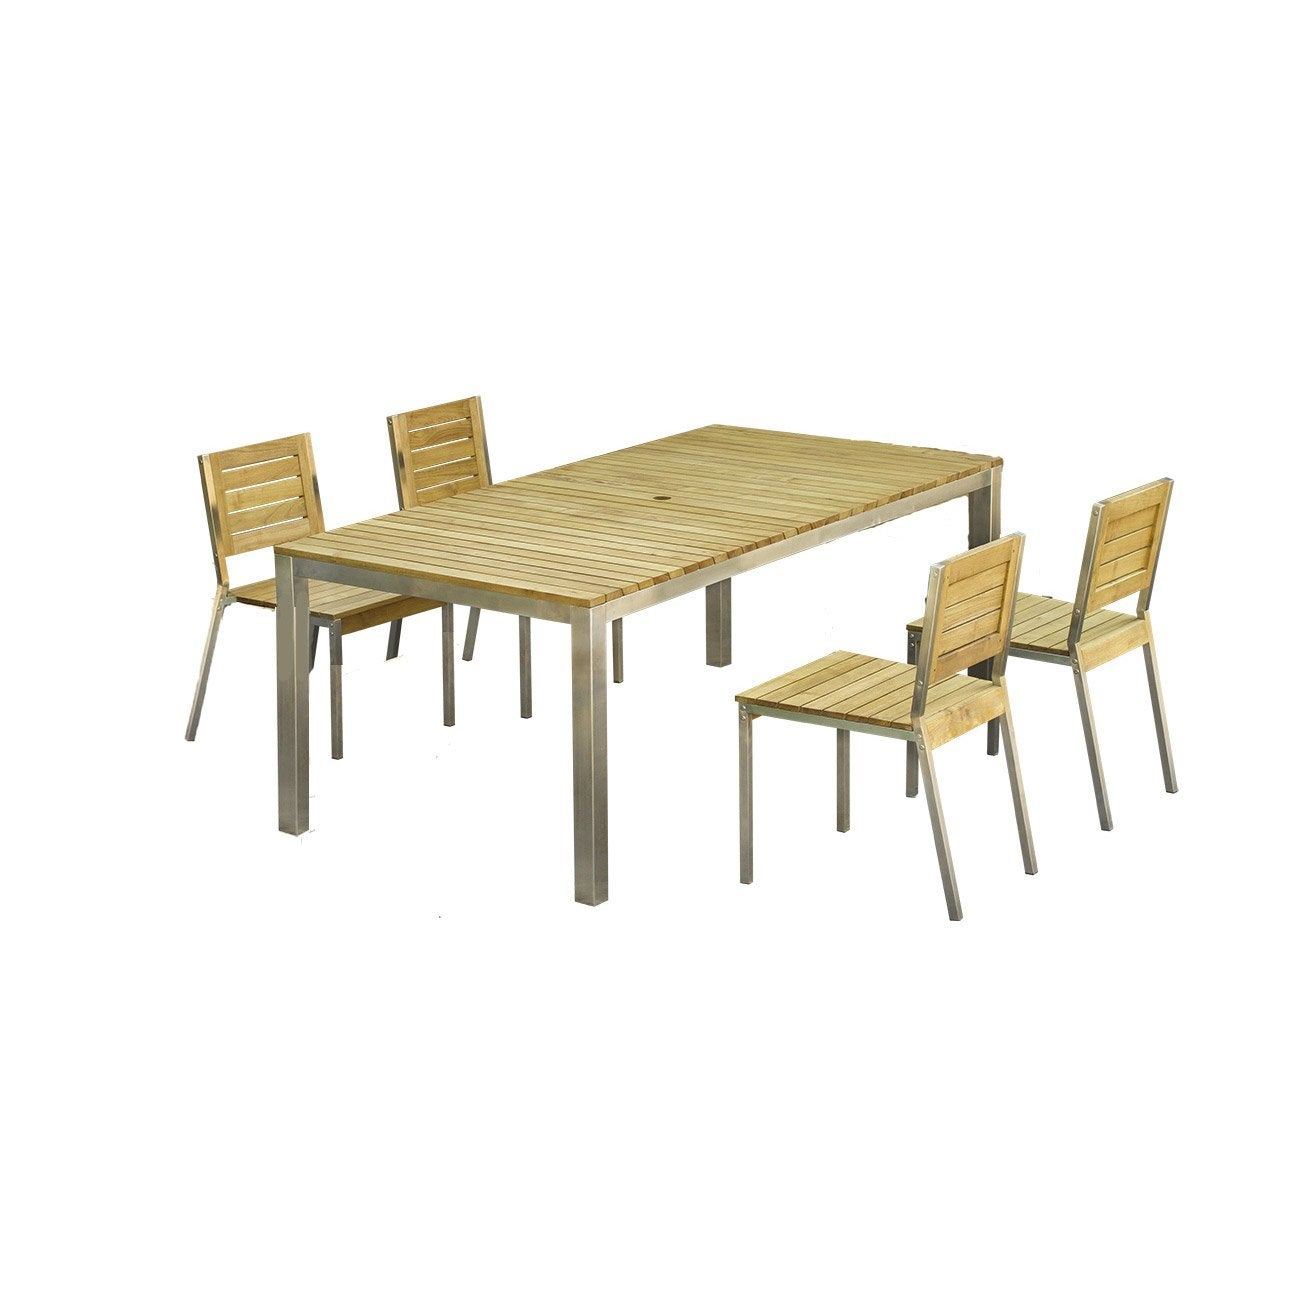 Salon de jardin robinox bois naturel 1 table 200x100 2 for Table de nuit leroy merlin